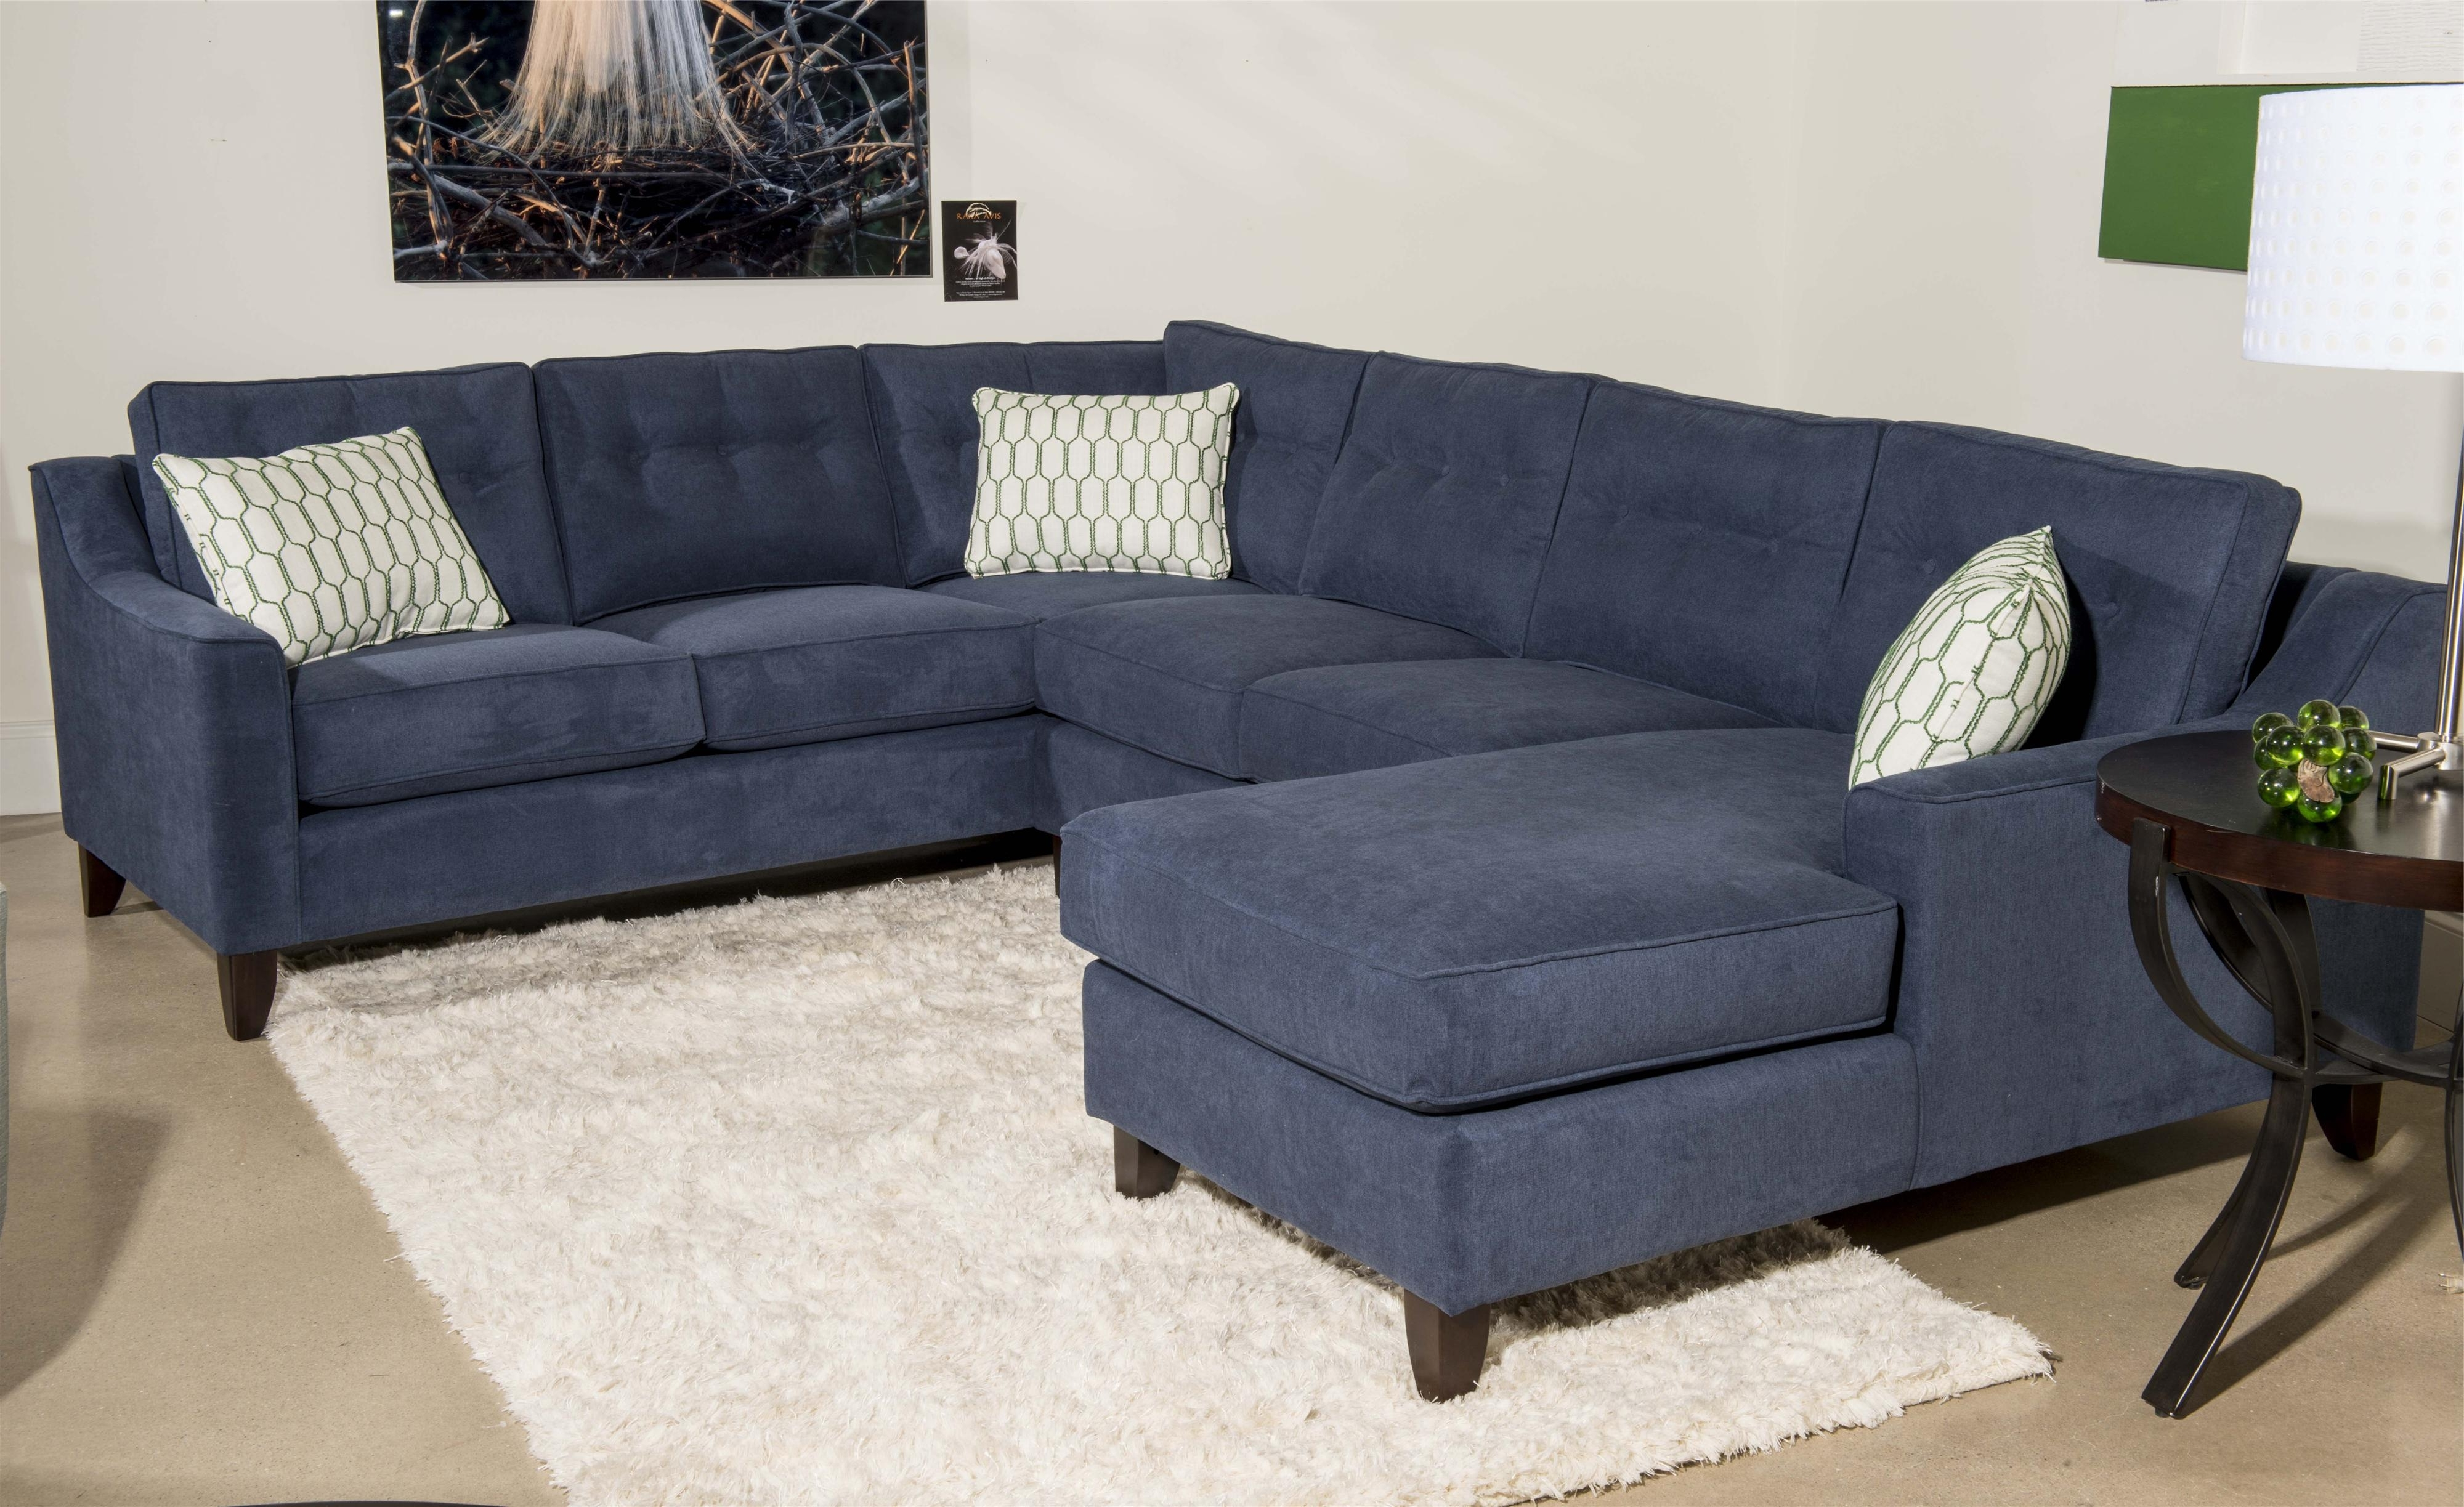 Current 3 Piece Sectional Sofas With Chaise Throughout Contemporary 3 Piece Sectional Sofa With Chaiseklaussner (View 2 of 15)